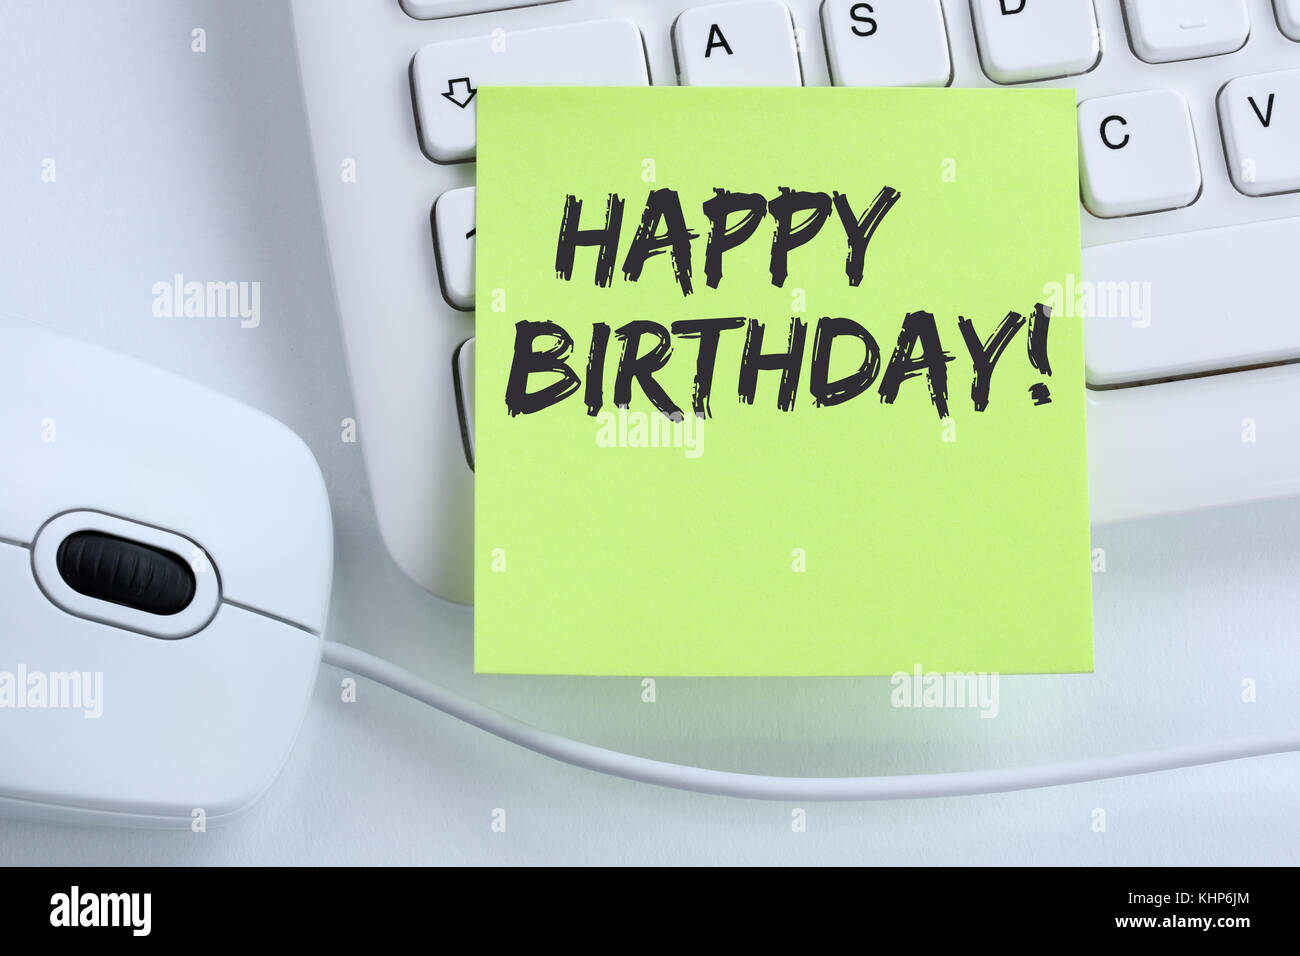 Happy Birthday greetings celebration business concept mouse computer keyboard - Stock Image